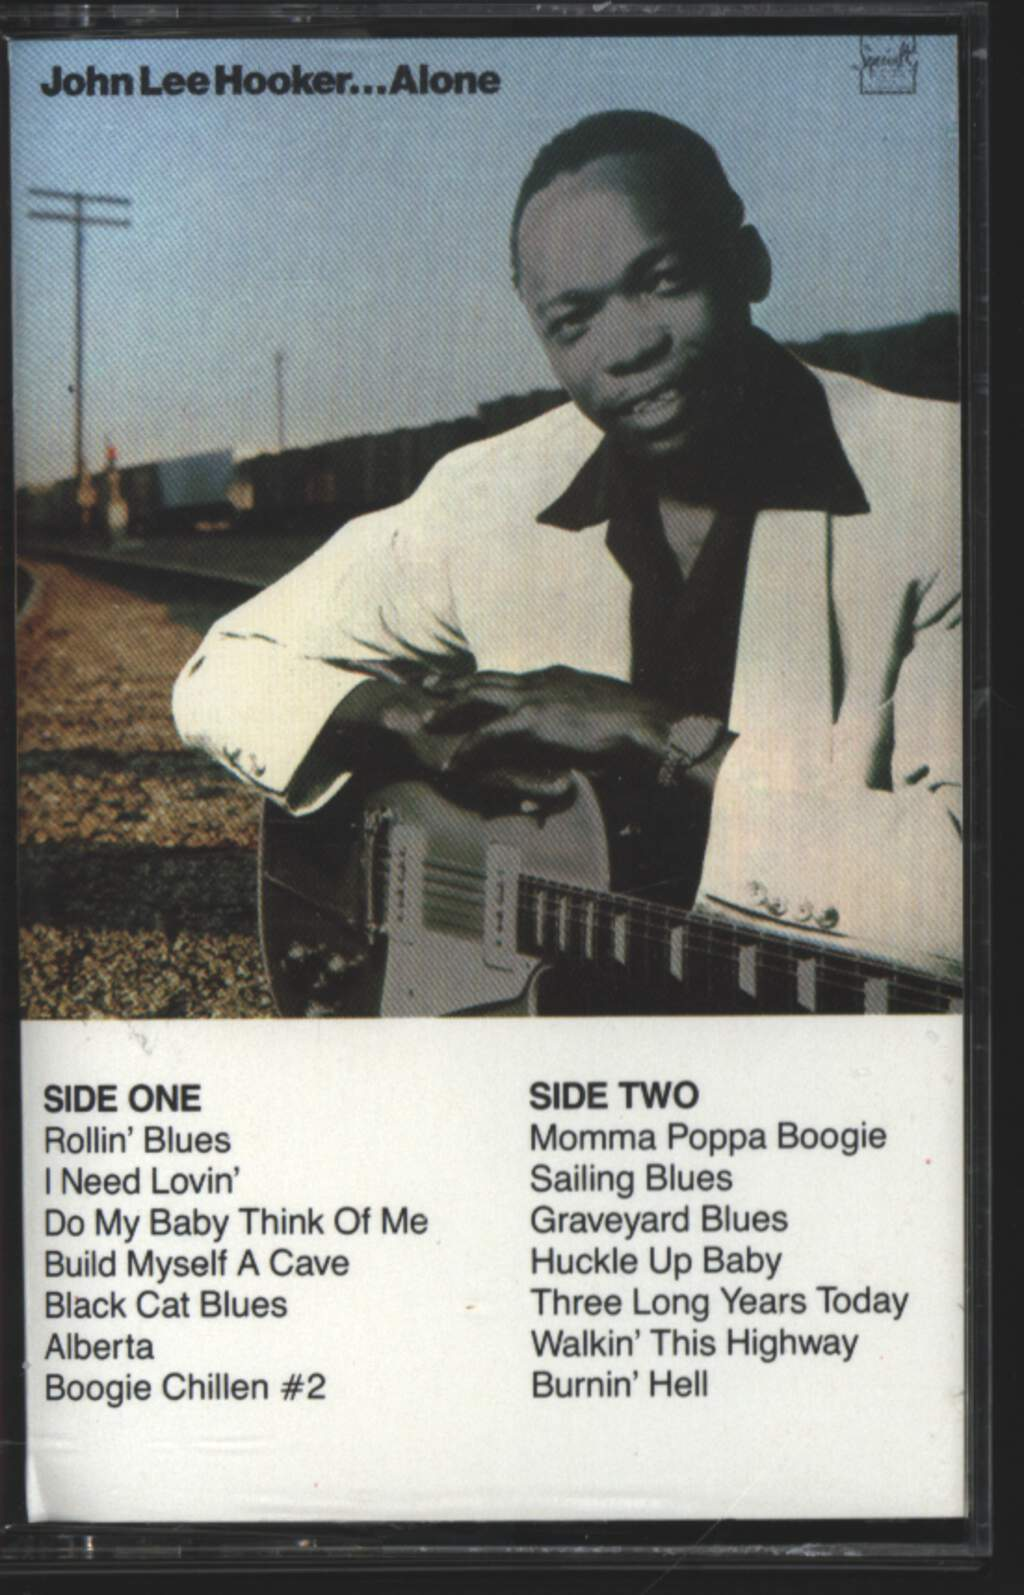 John Lee Hooker: Alone, Tape